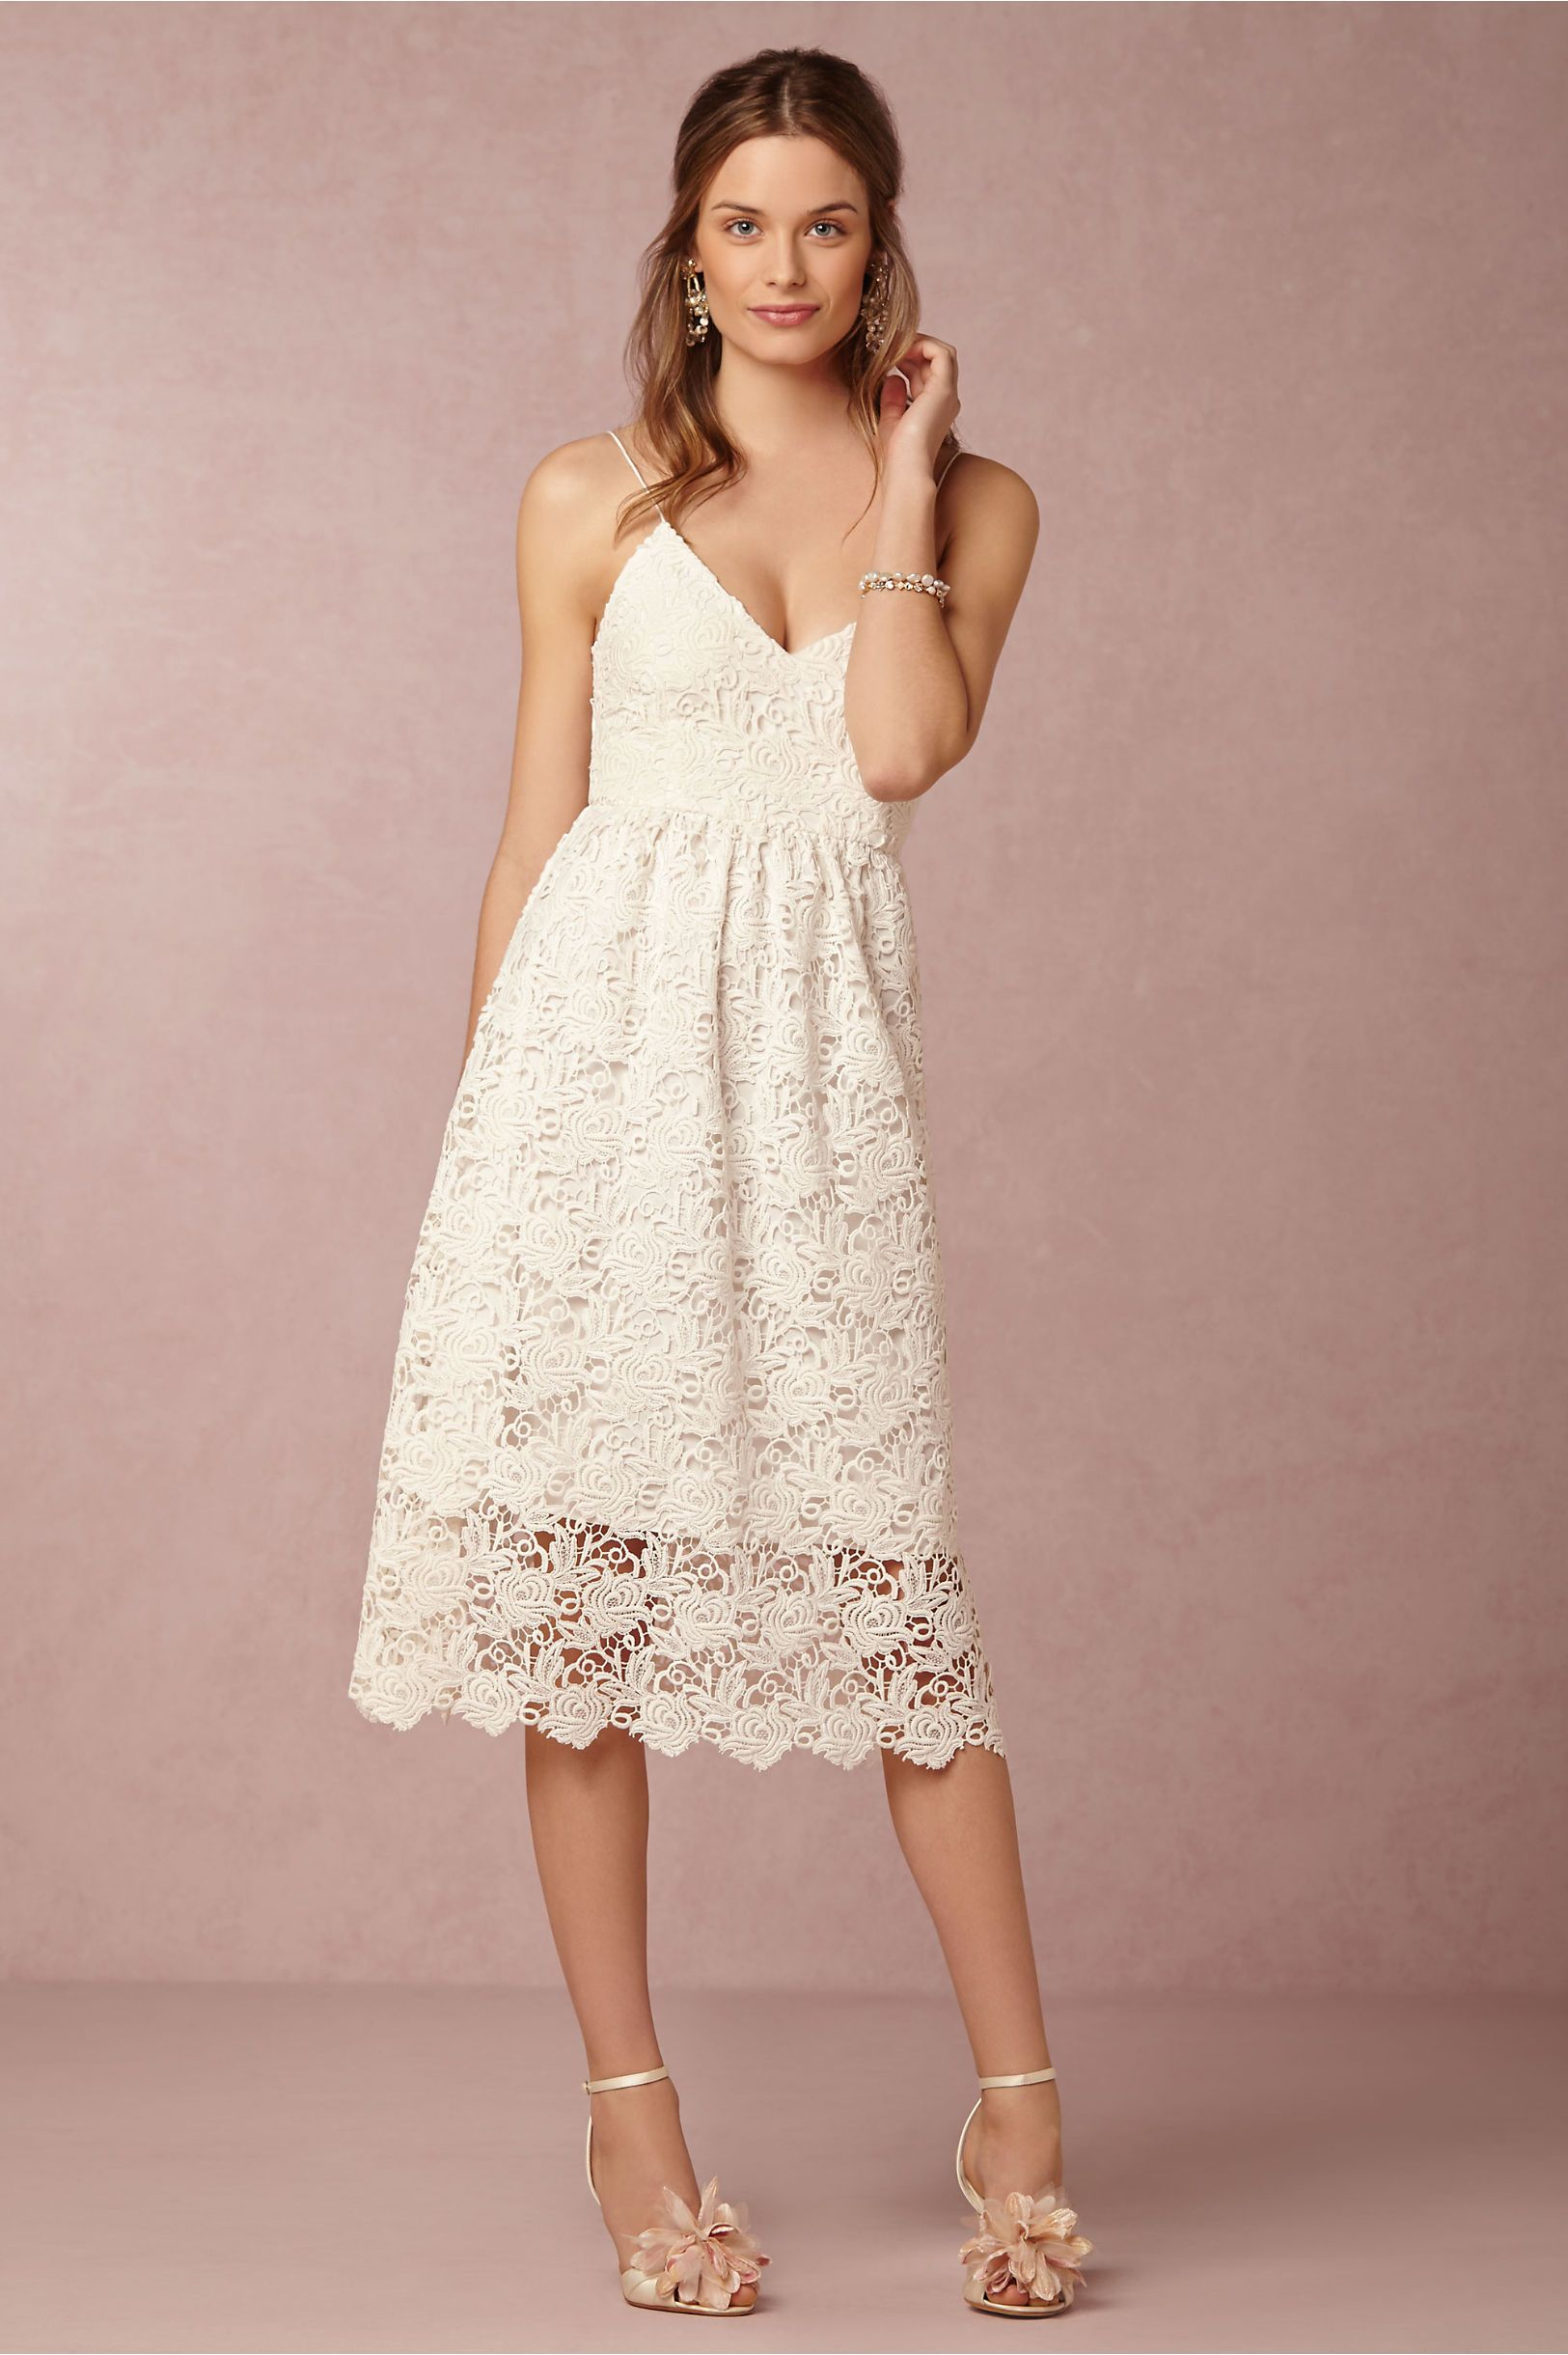 White dress bridal shower - Fabulous Bridal Shower Dresses To Wear If You Re The Bride